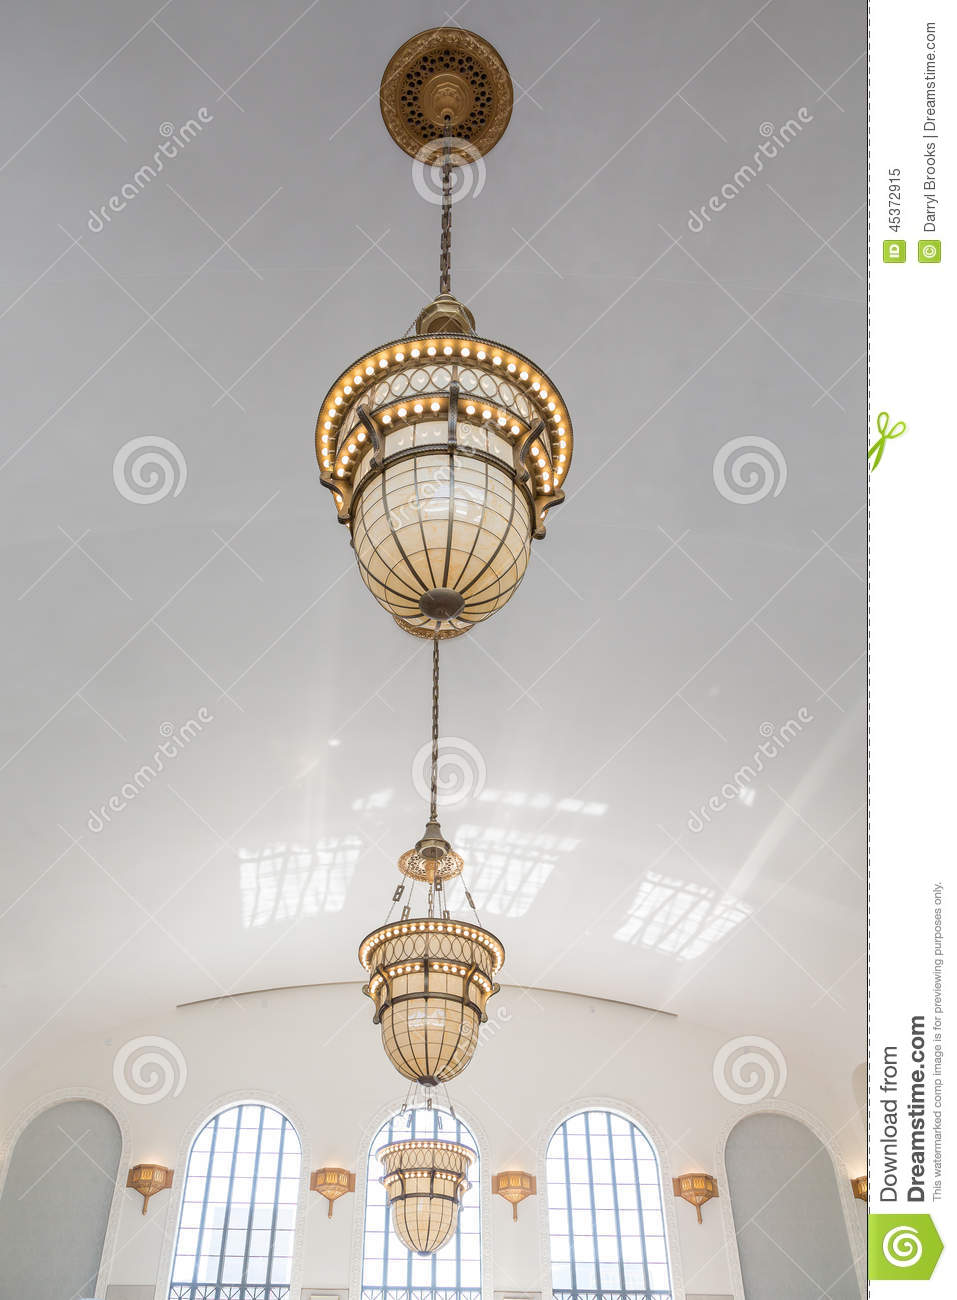 Ornate old lamps hanging from white ceiling stock photo for Old fashioned lighting fixtures